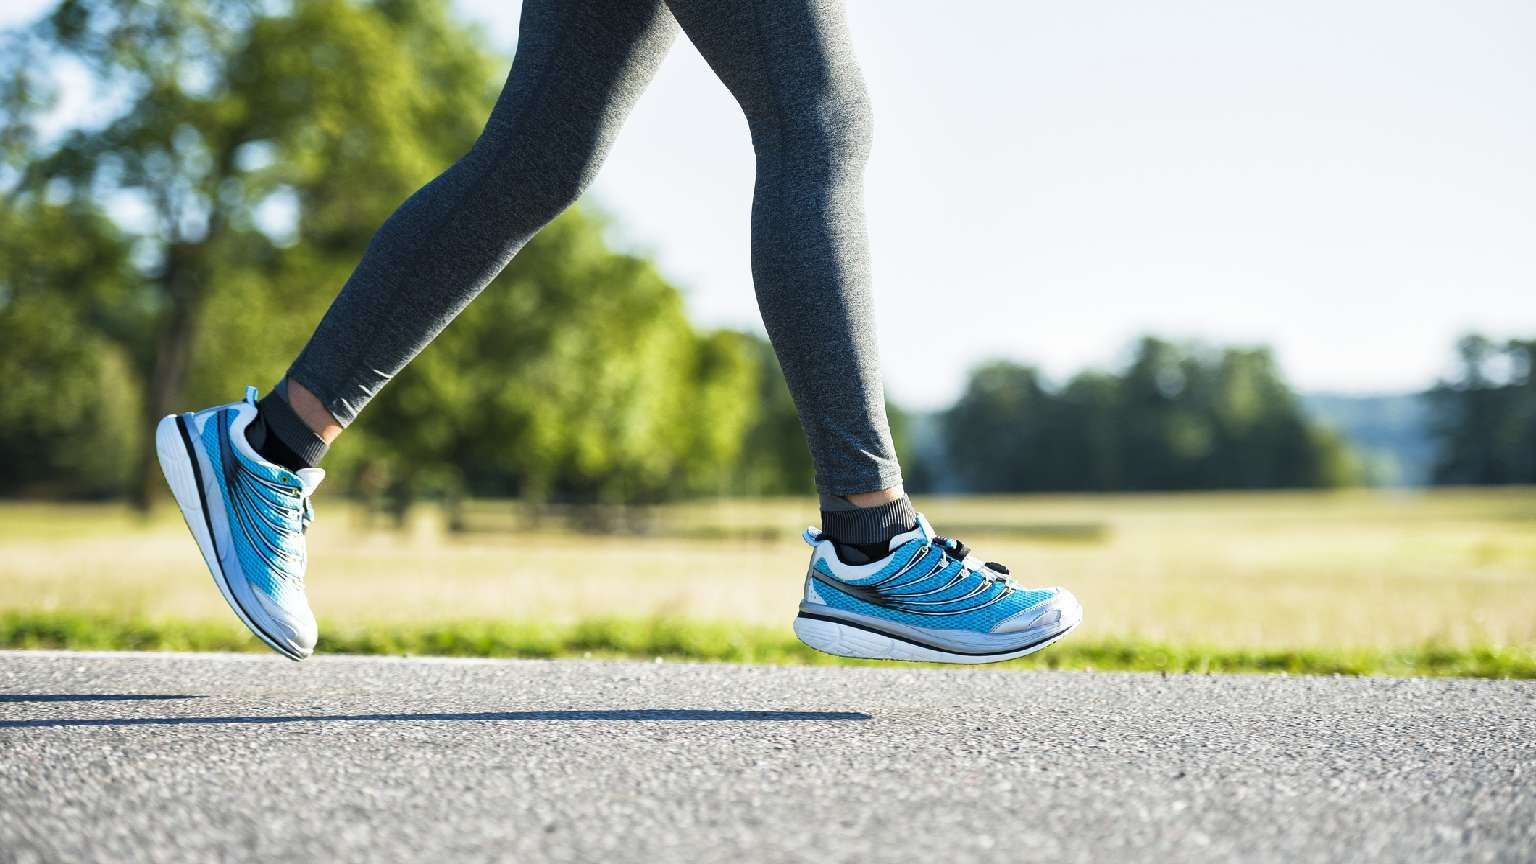 Woman running on road wearing blue running sneakers.